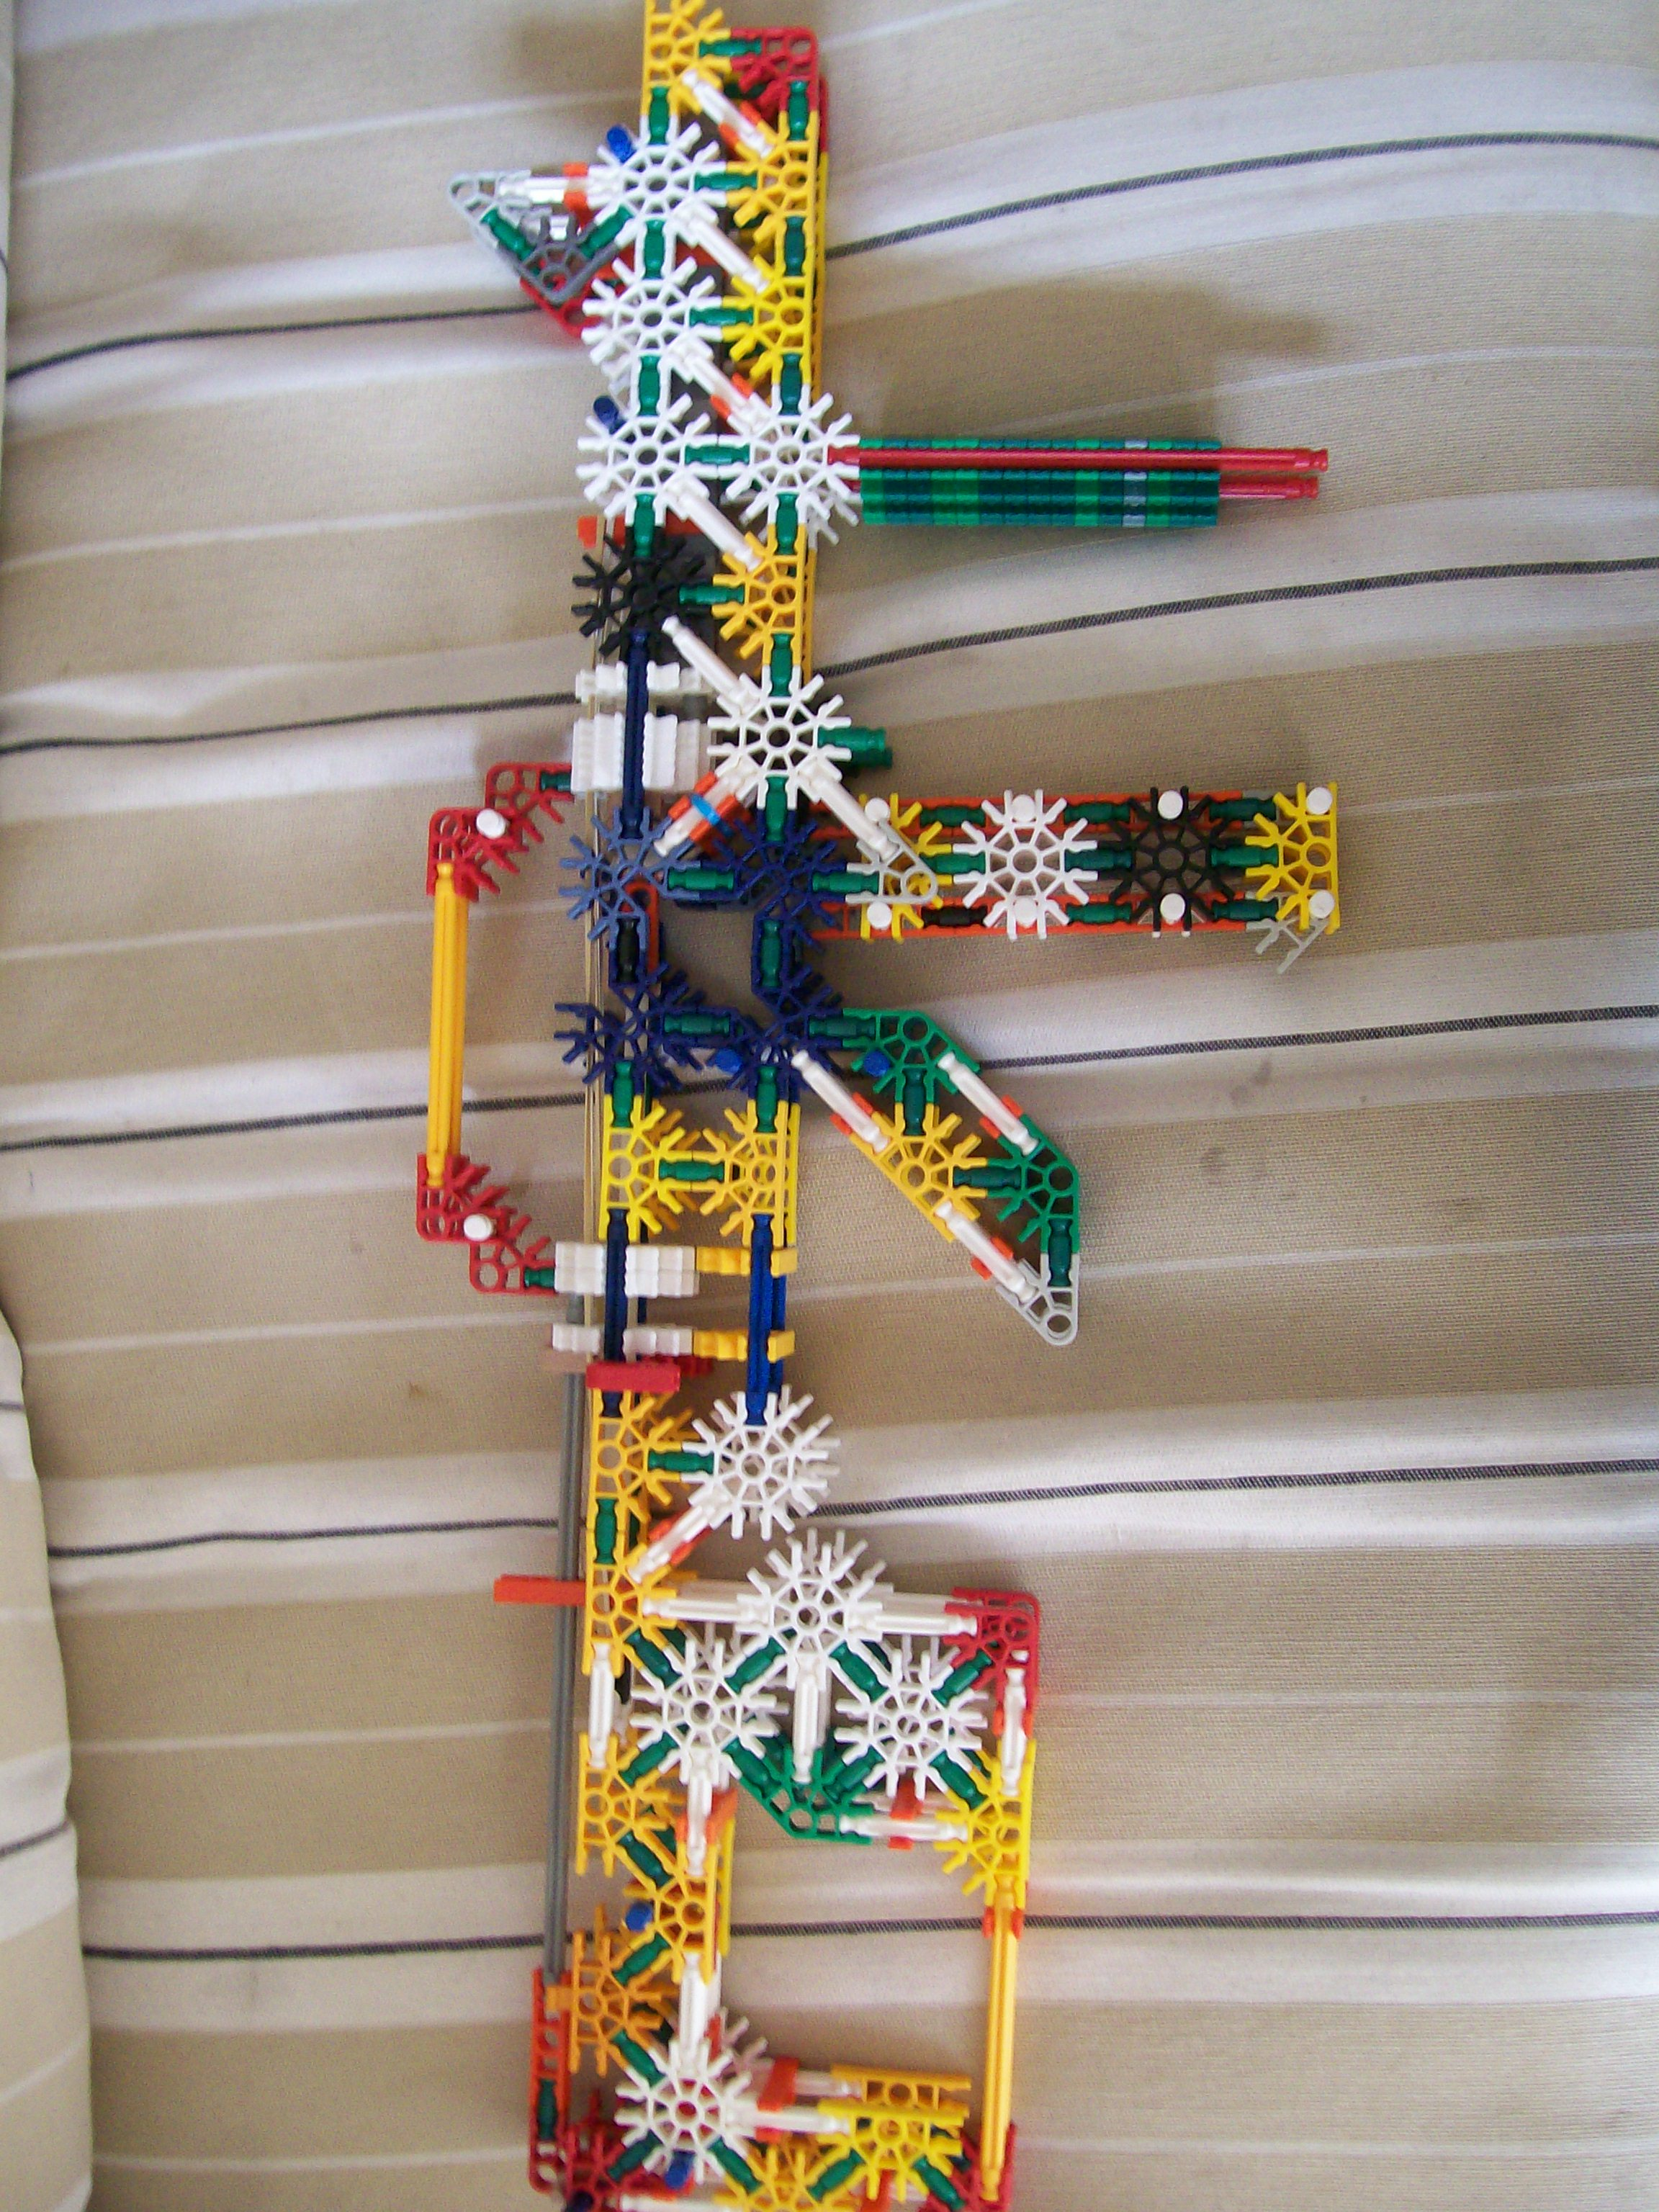 Danny's knex m4 carbine working modle